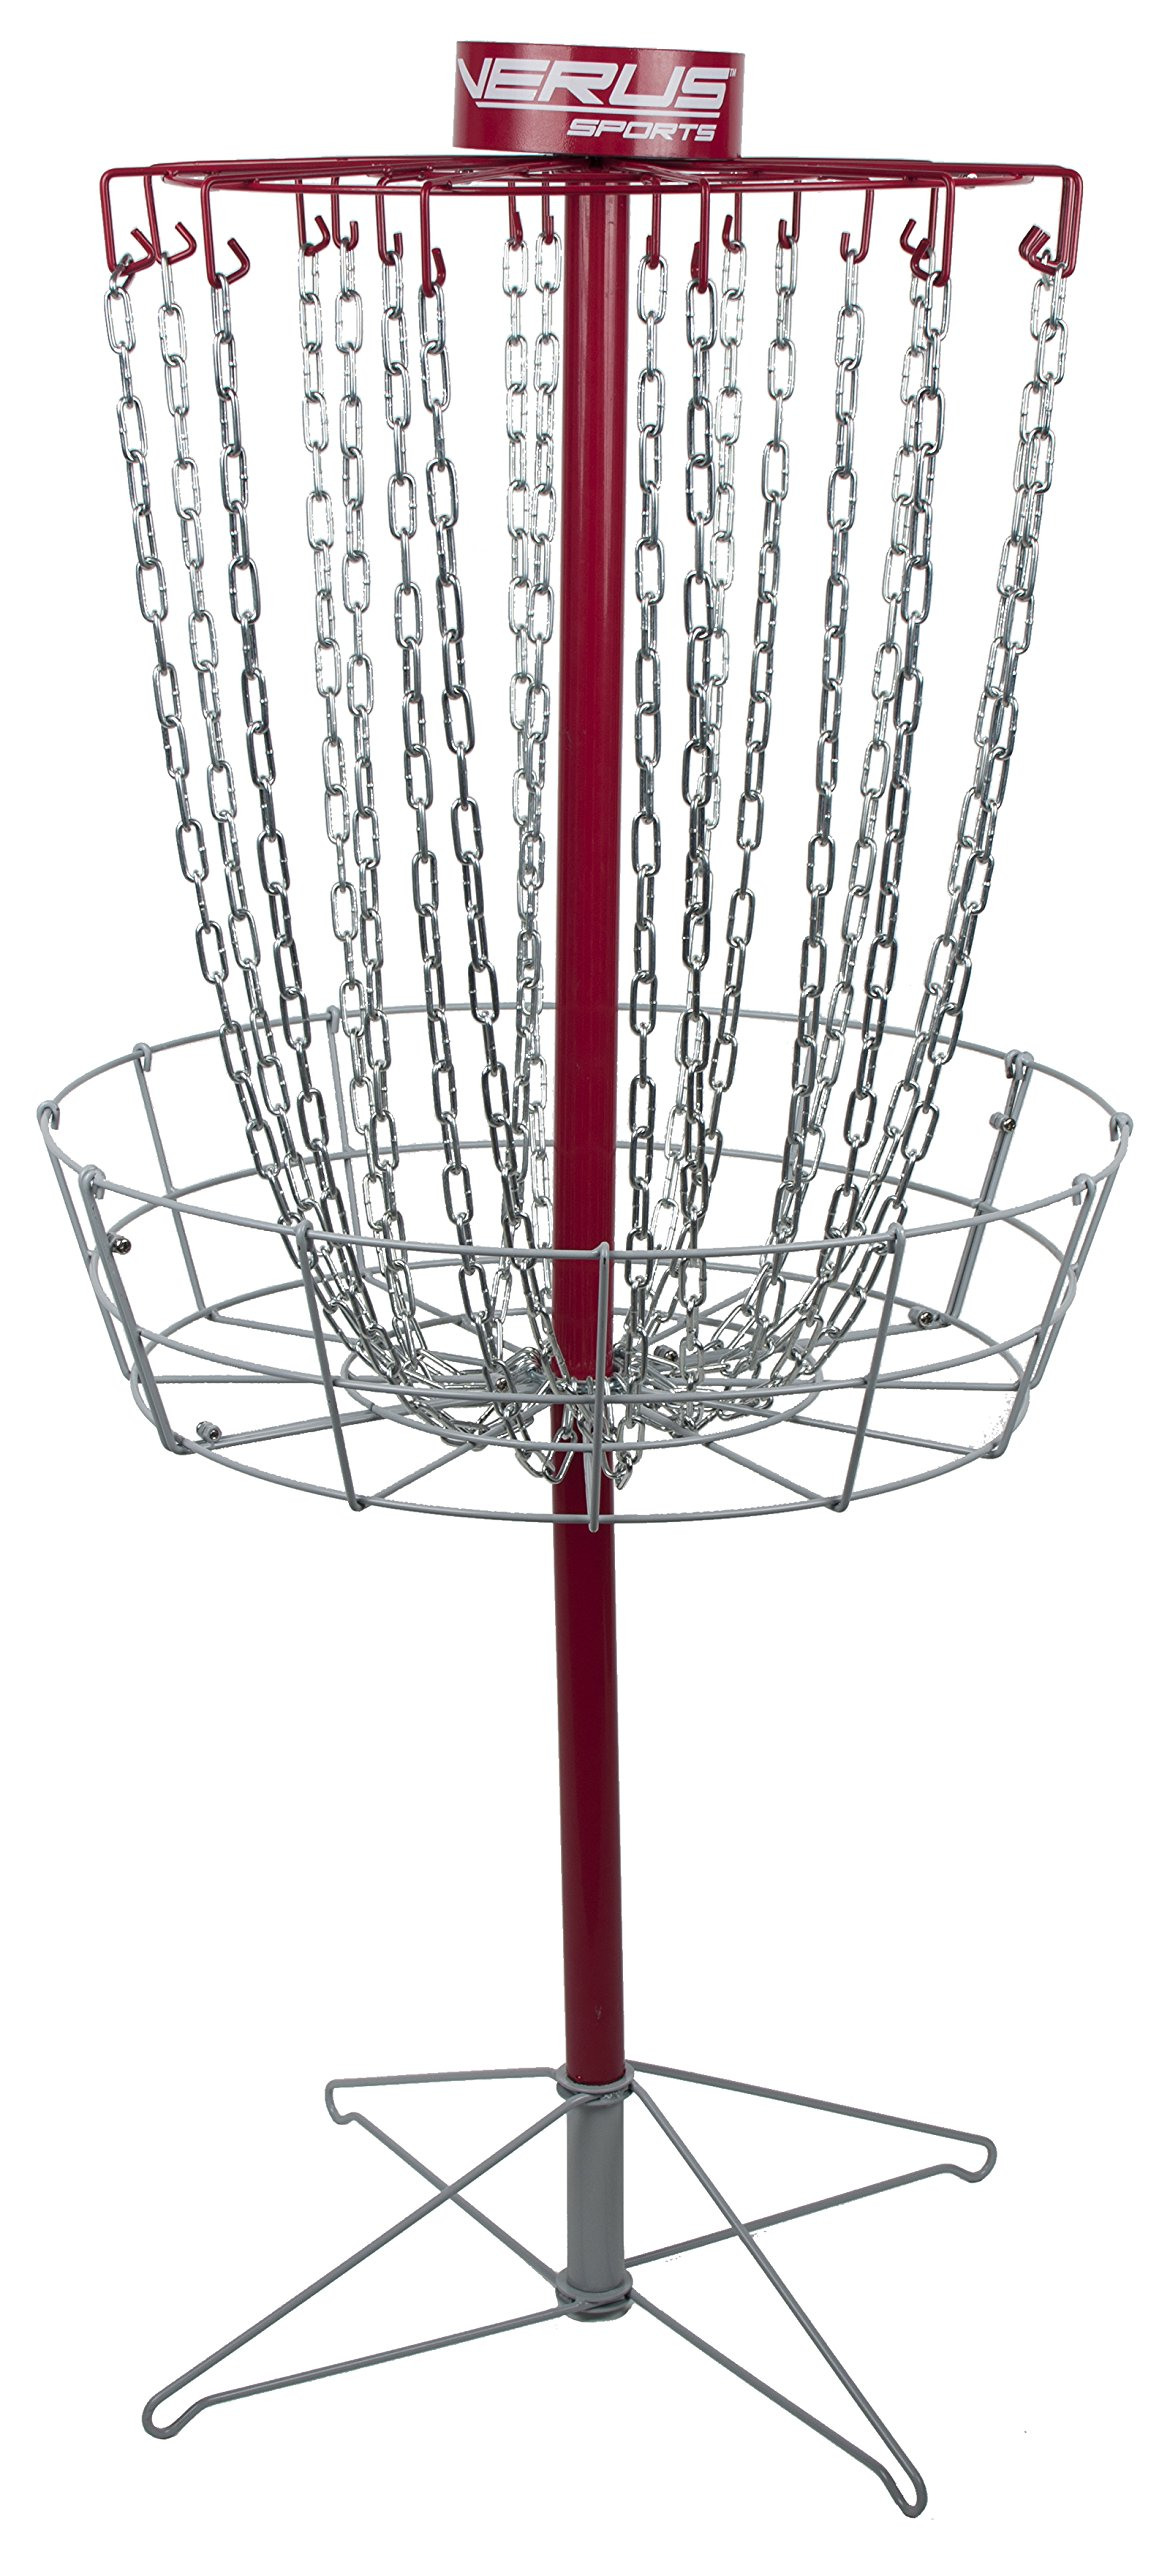 Verus Sports TG455 Regulation Pro Disc Golf Basket, Red by Verus Sports